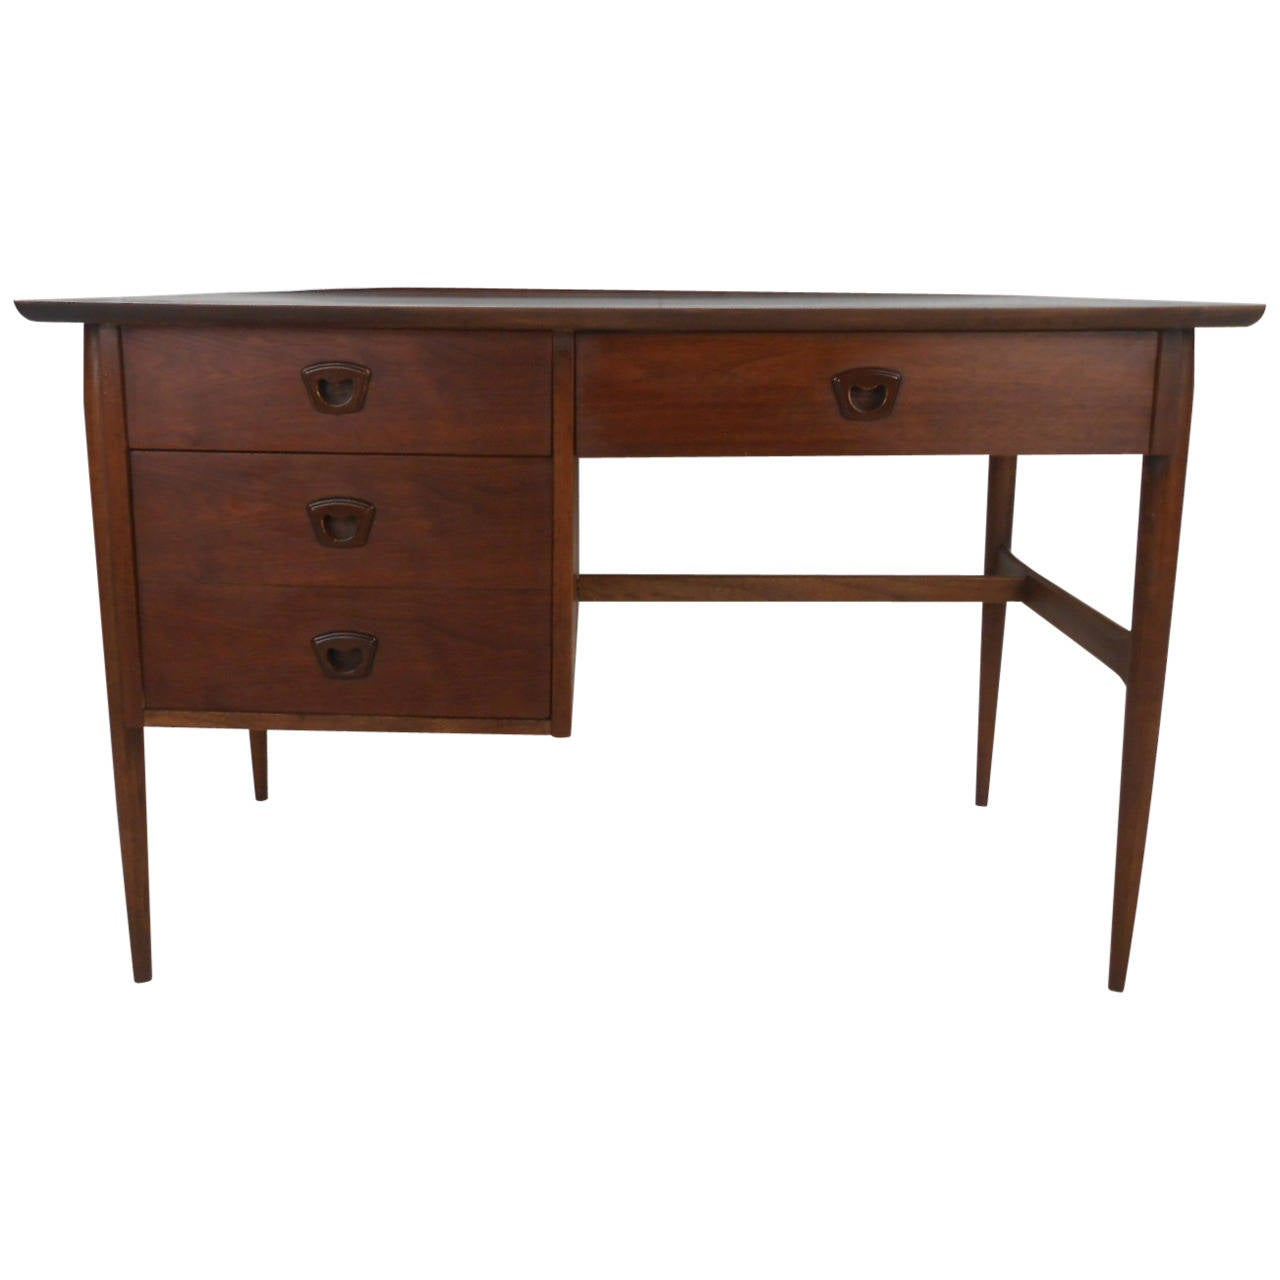 Stylish Vintage Modern Desk By Bassett For